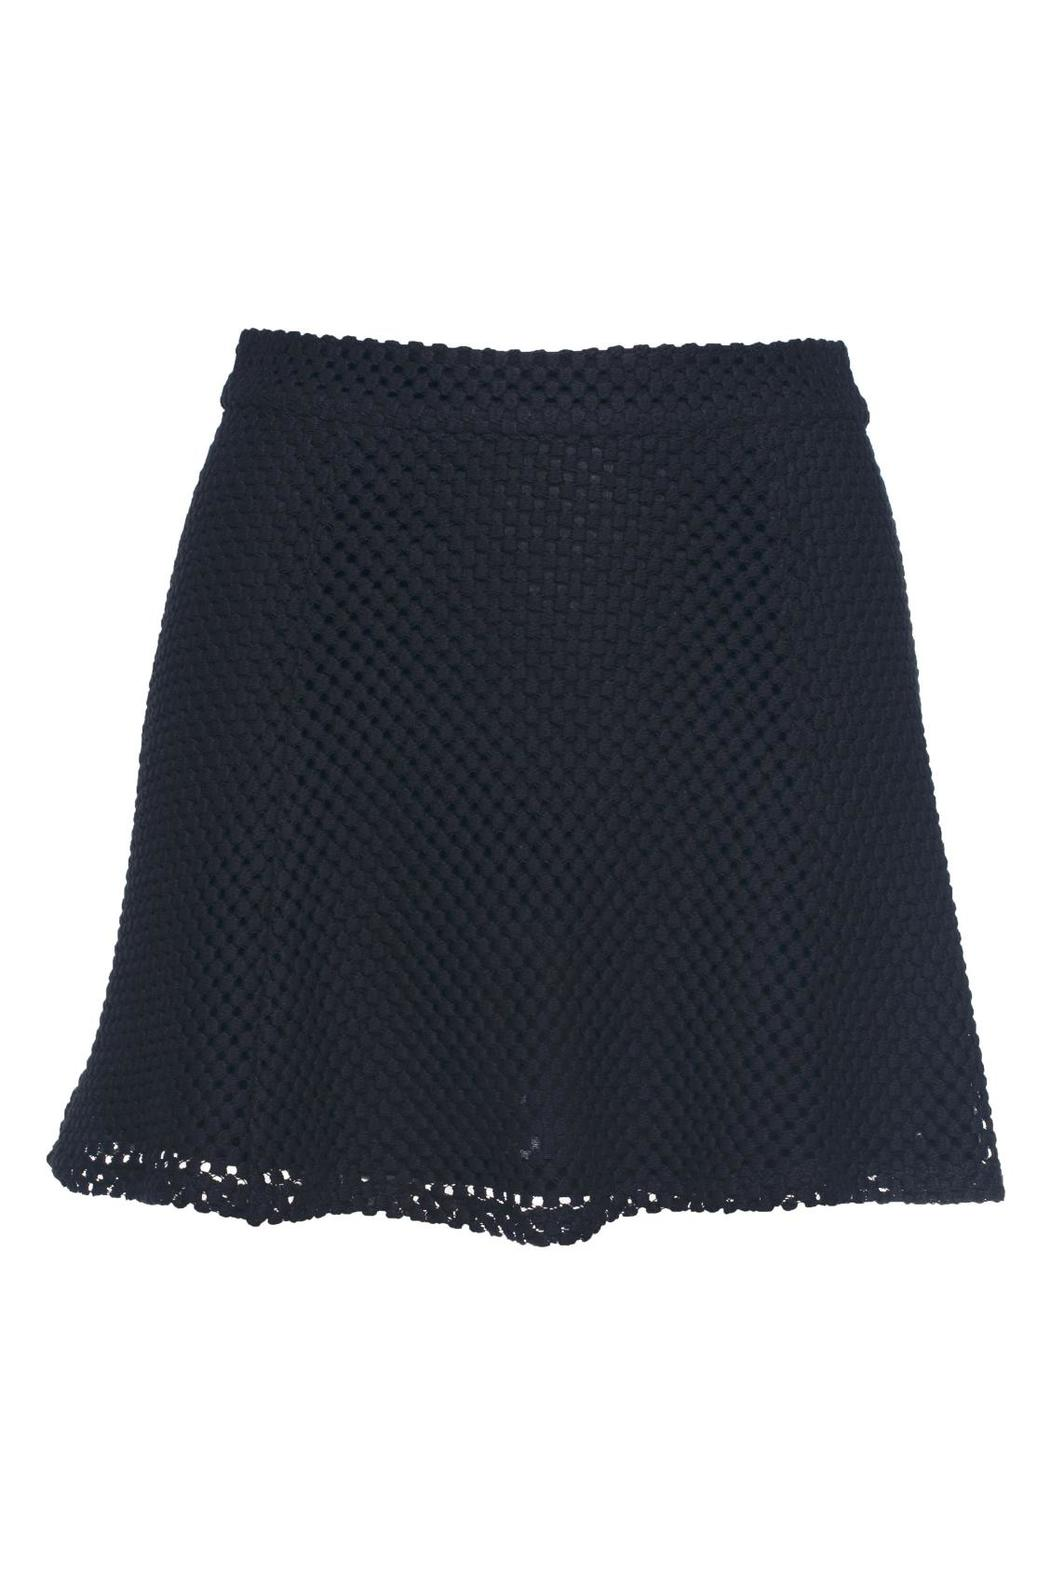 David Lerner New York Lace Bowery Skirt - Front Cropped Image